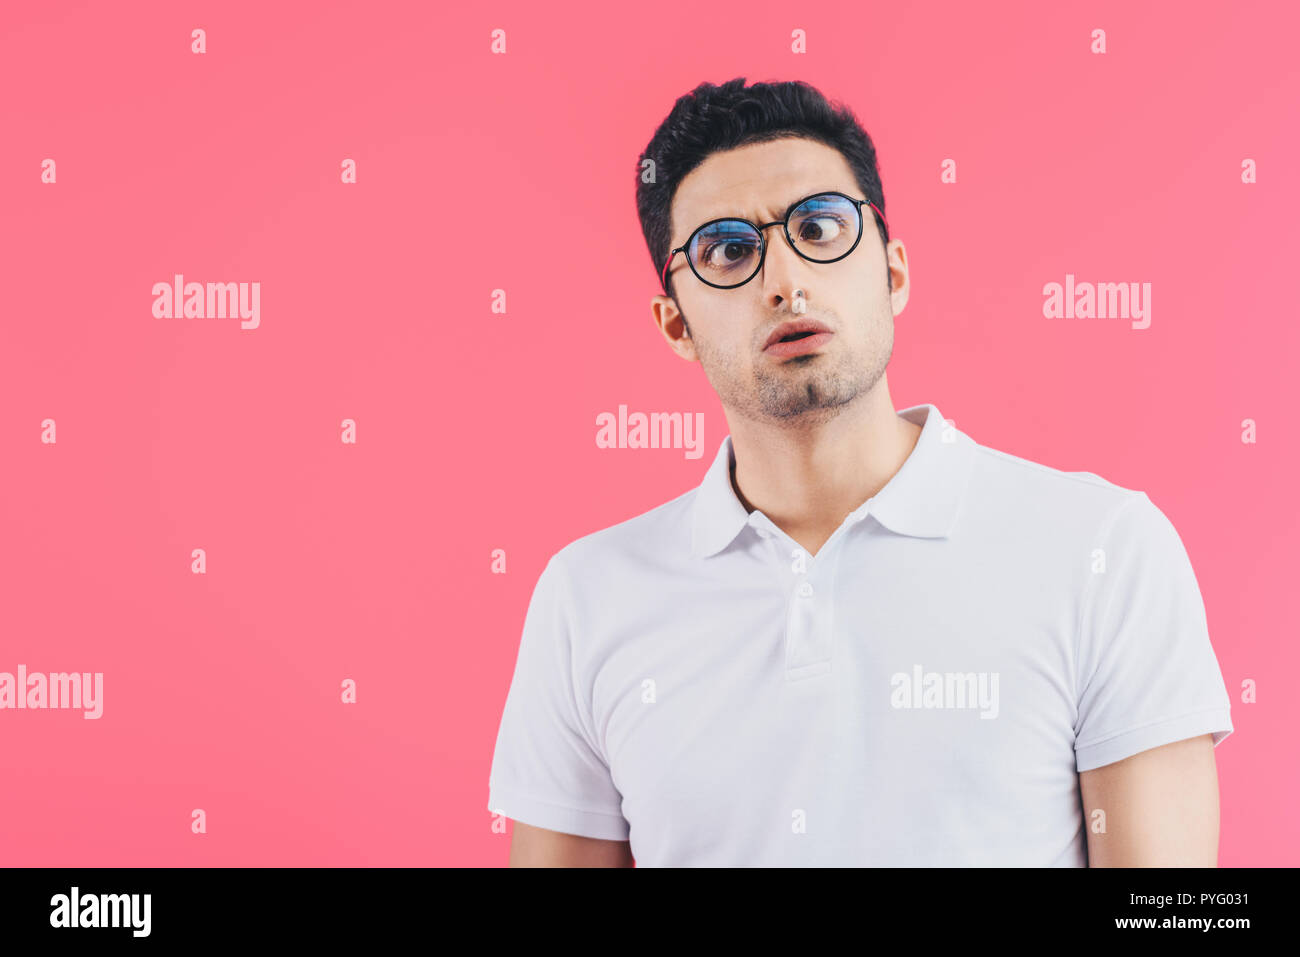 handsome man in glasses grimacing isolated on pink - Stock Image